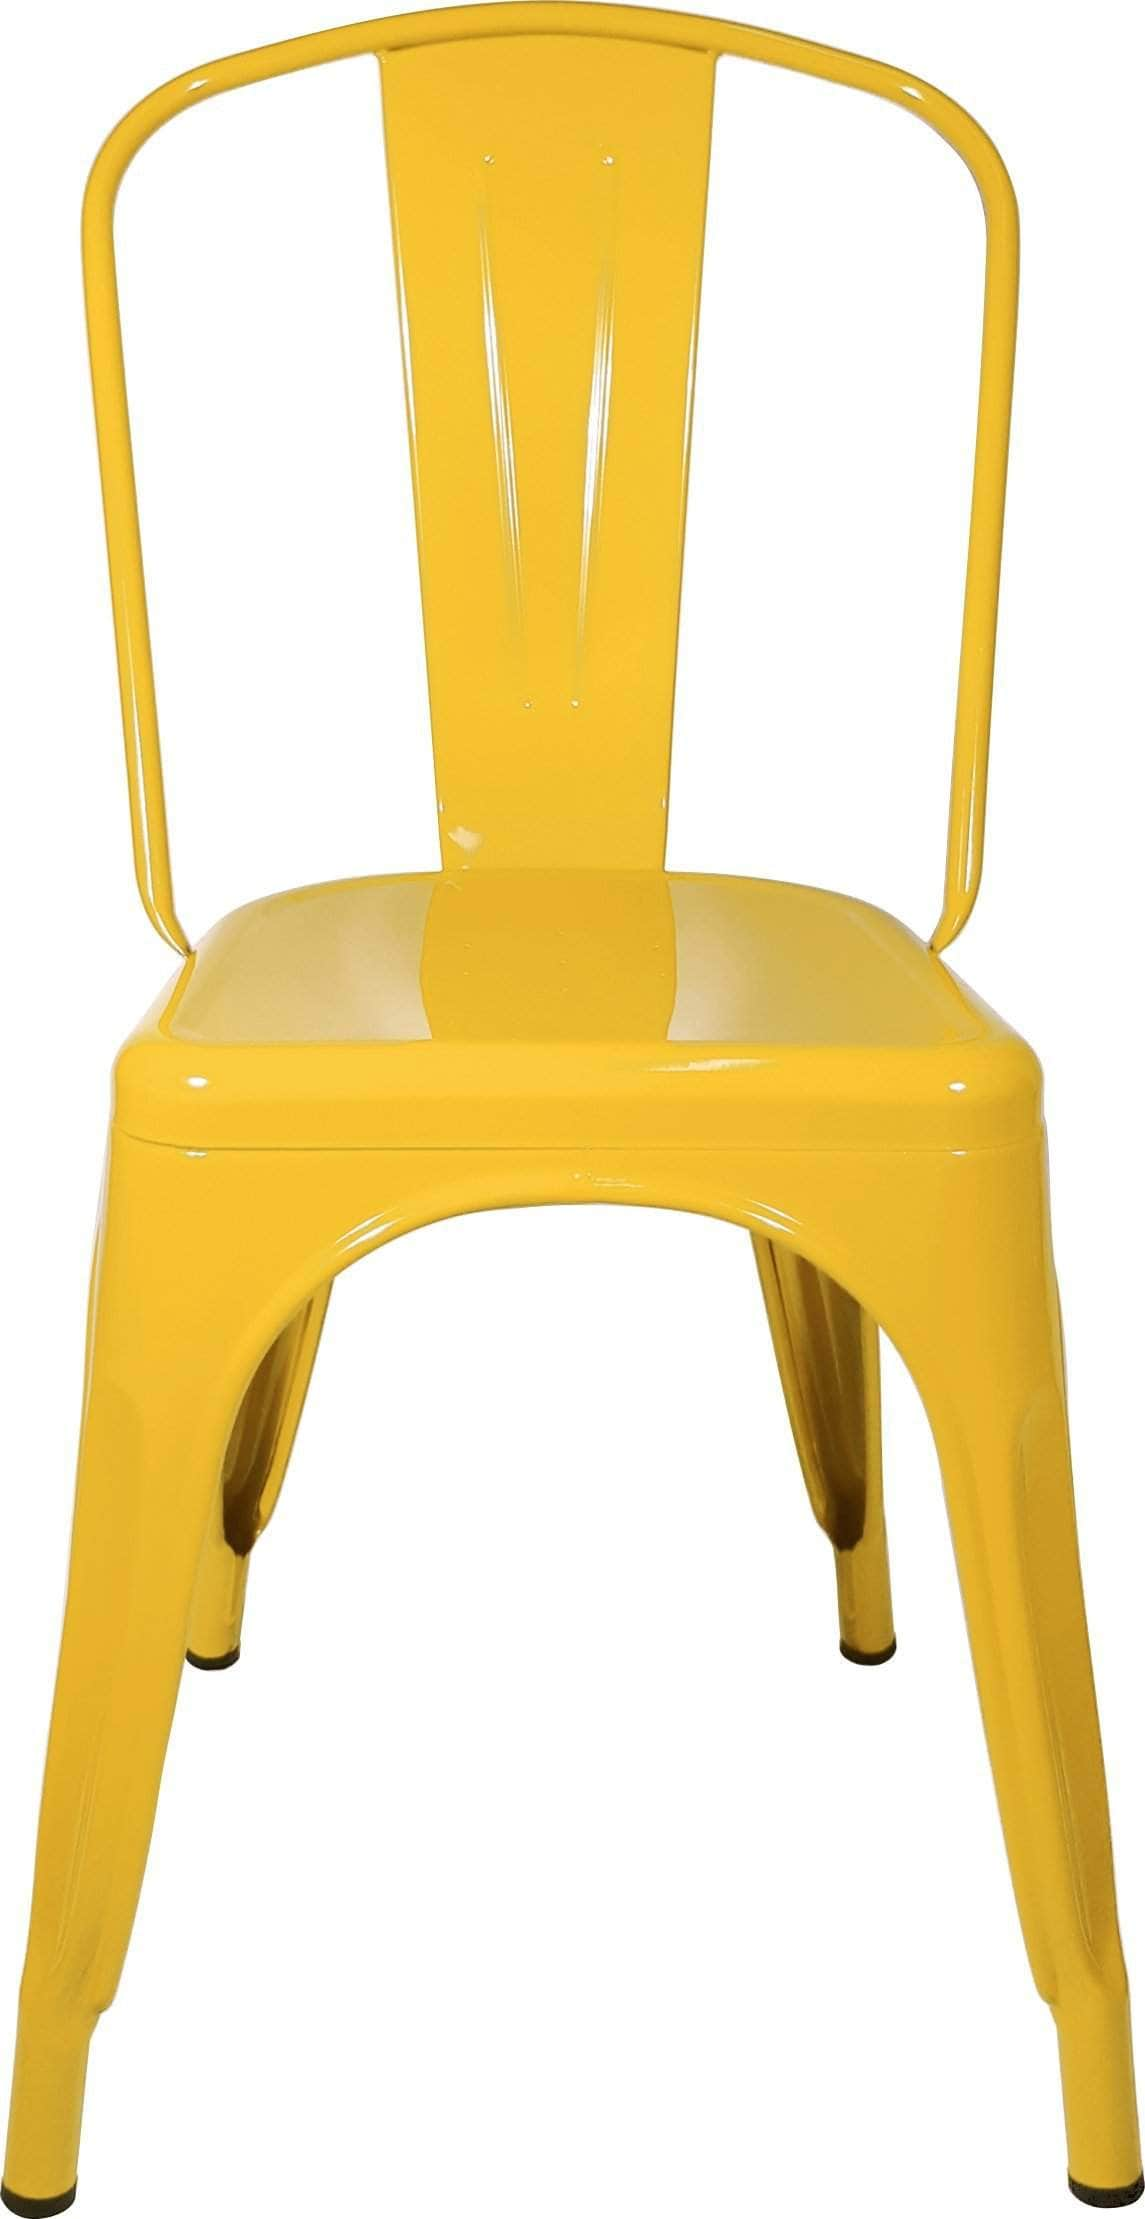 Yellow Replica Tolix Cafe Chair High Back Buy line Perth